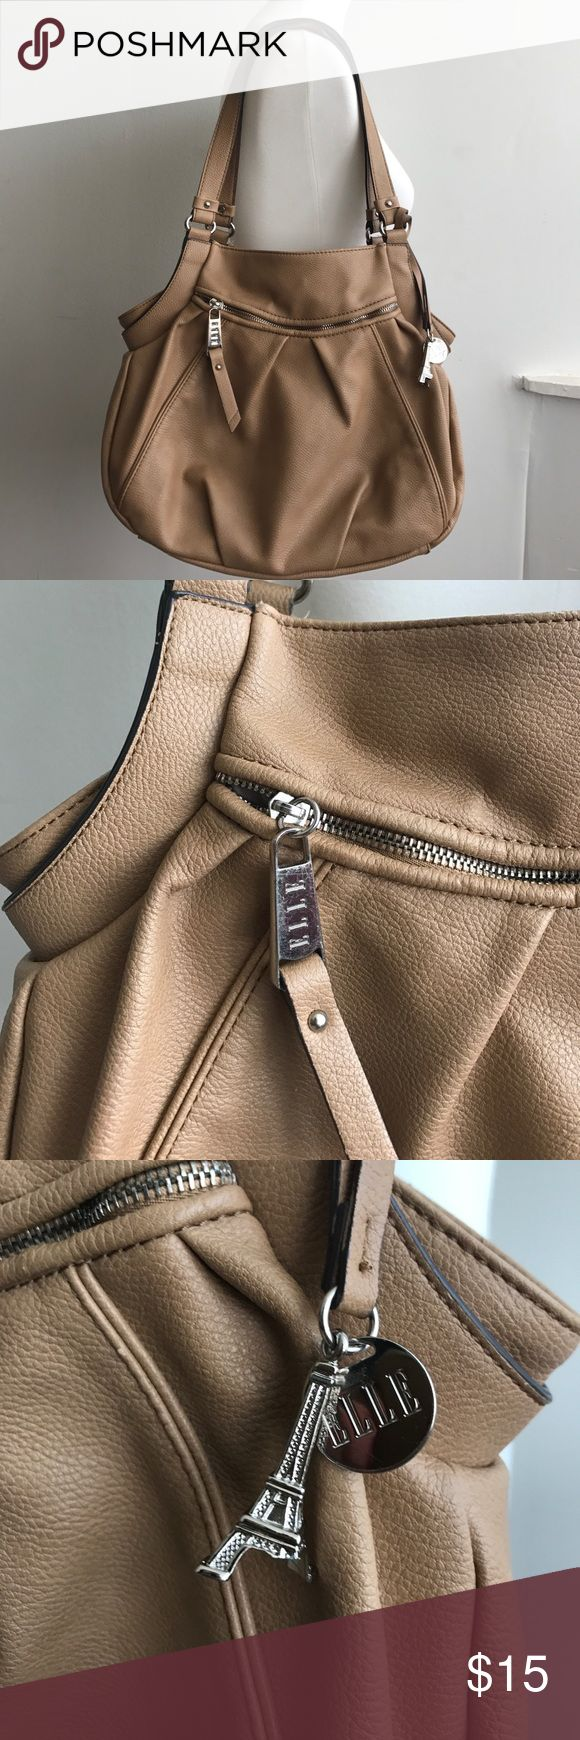 Elle Handbag Tan Shoulder Bag Purse This post is for an Elle Tan Handbag. It has some imperfections that can be seen in the pictures. Let me know if you have any questions. Thank you for looking! Elle Bags Shoulder Bags